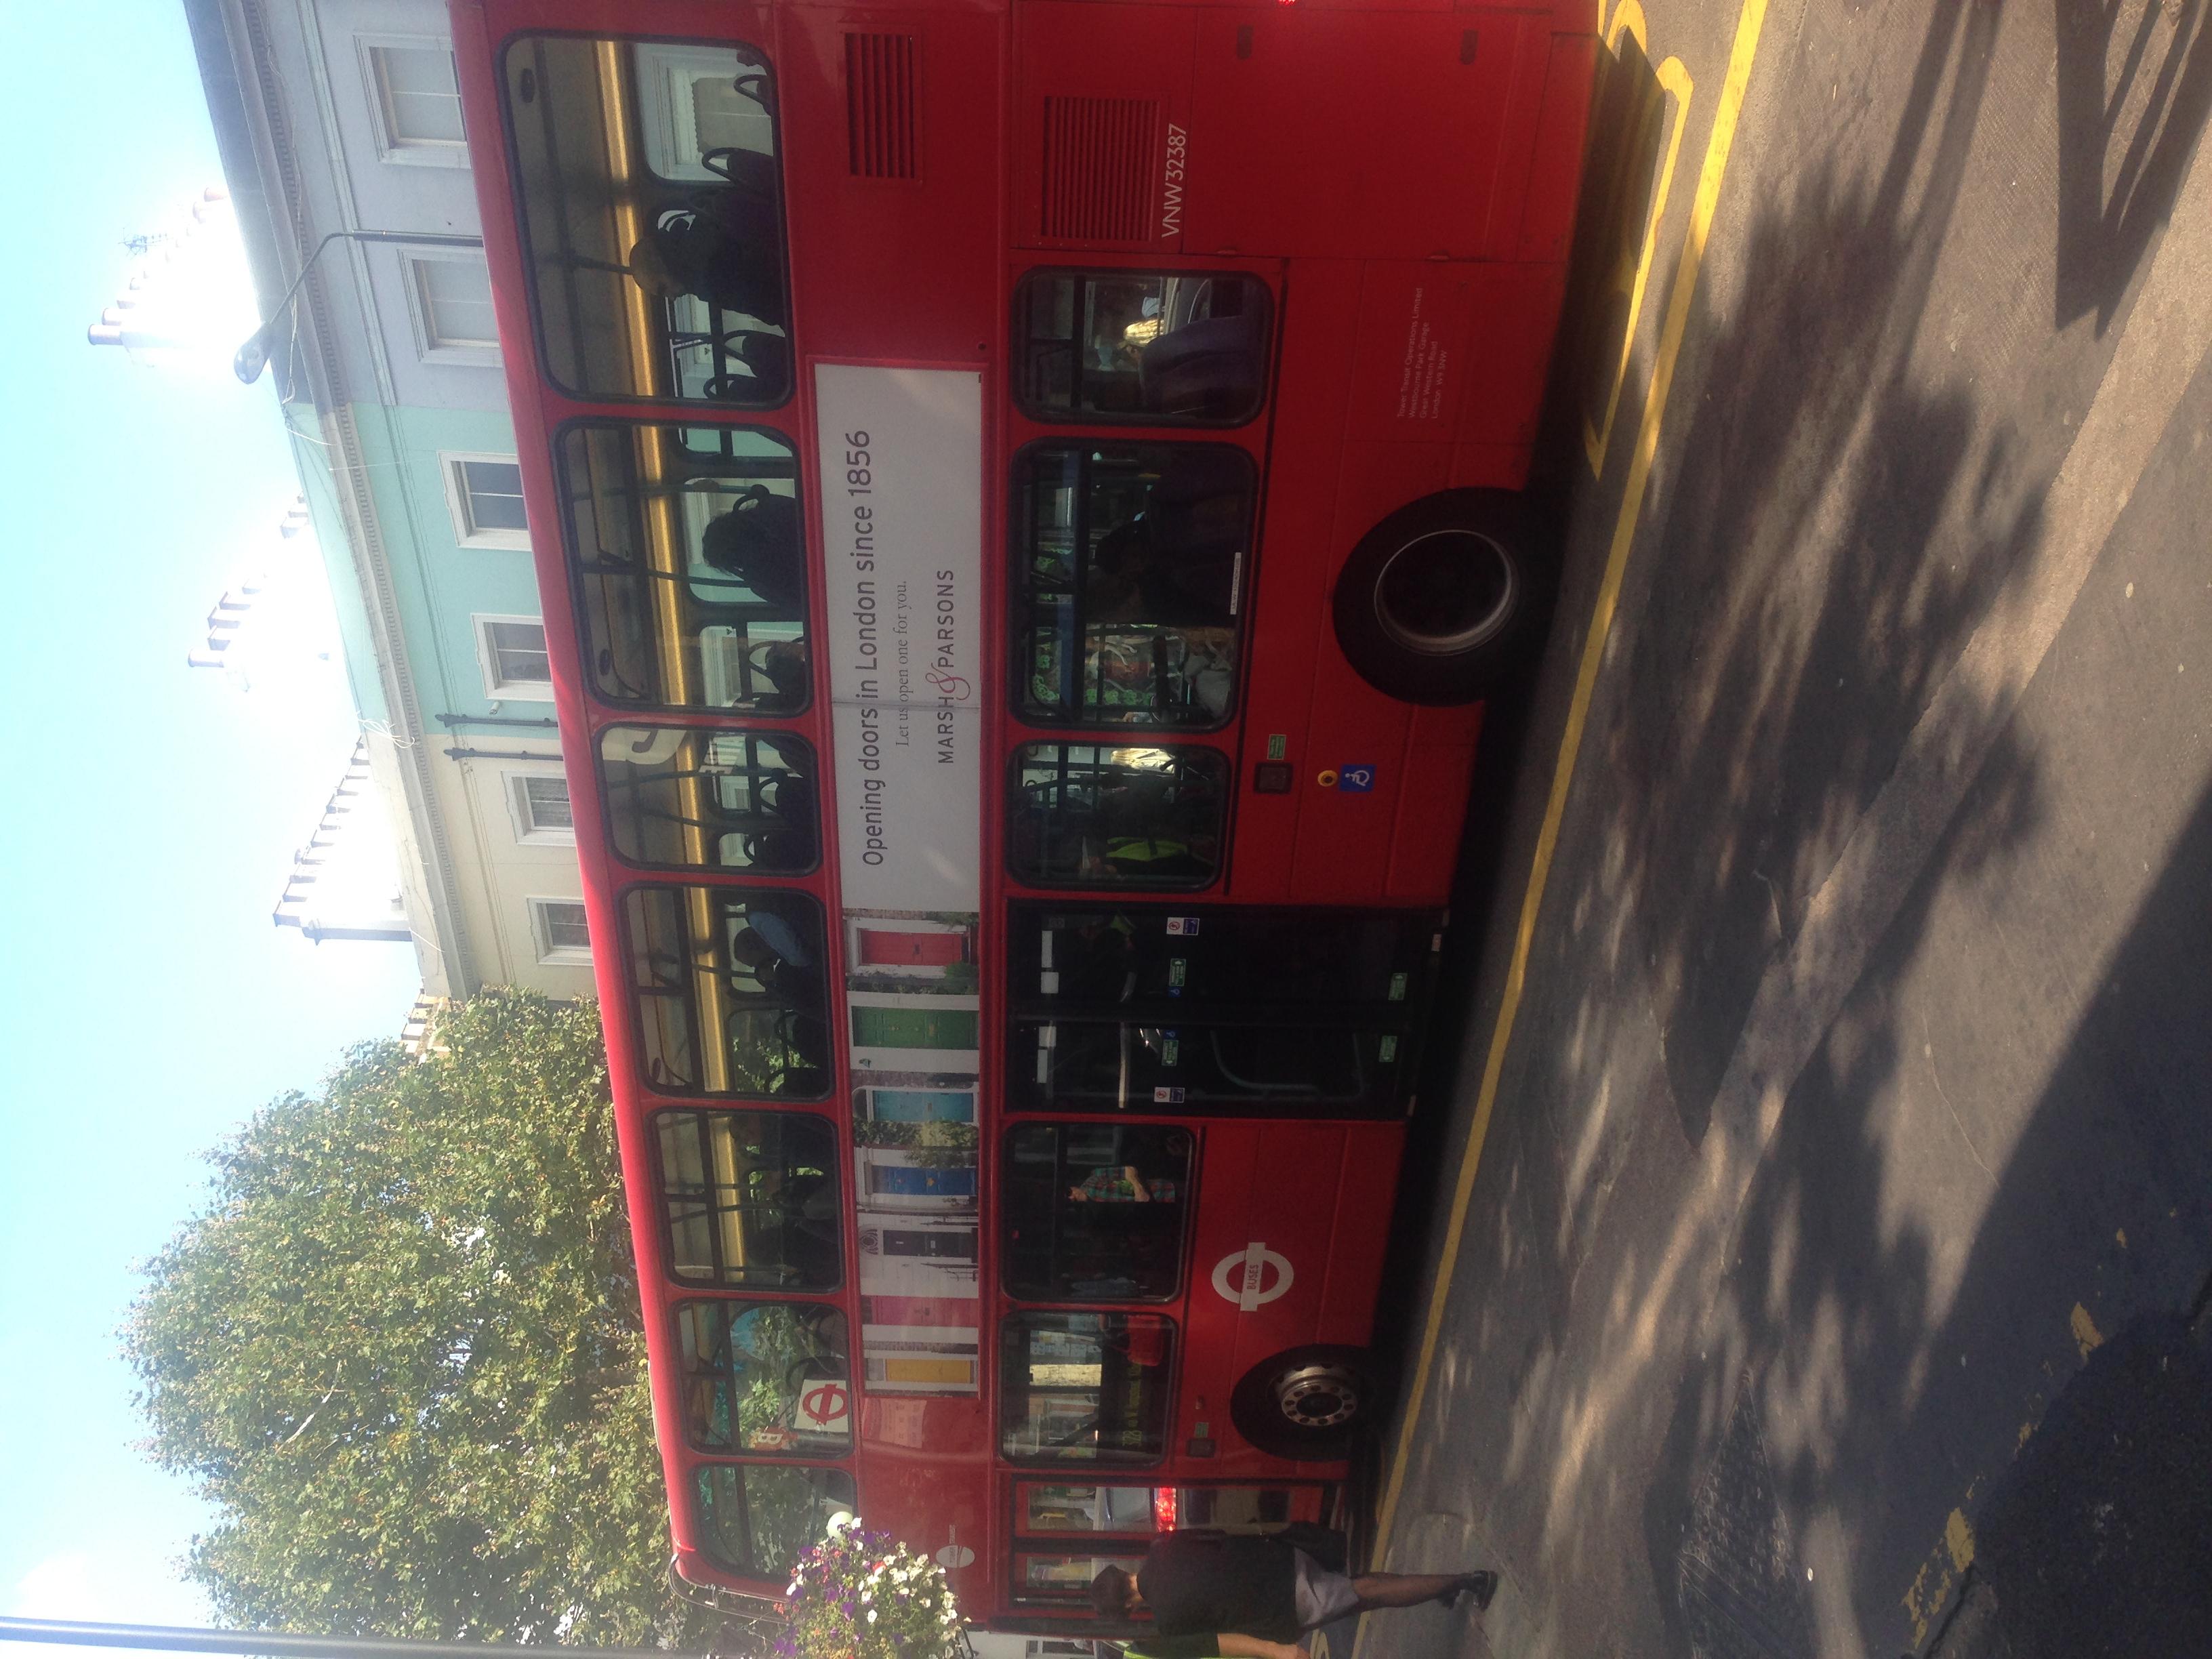 marshandparsons-bus-the-table-london.jpg